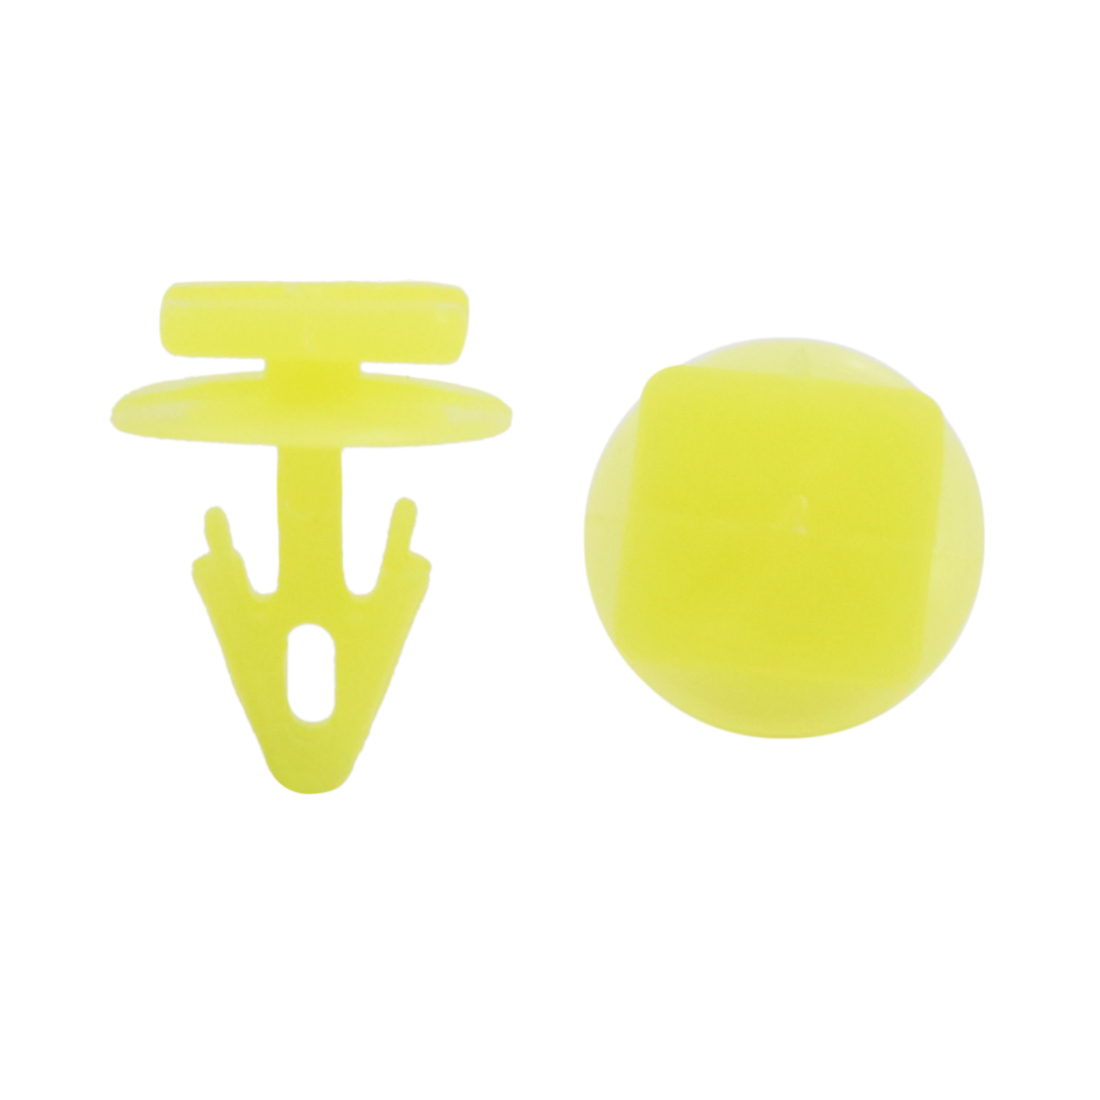 50pcs Yellow Plastic Rivets Interior Moulding Clips Fender Fastener 9mm for Car